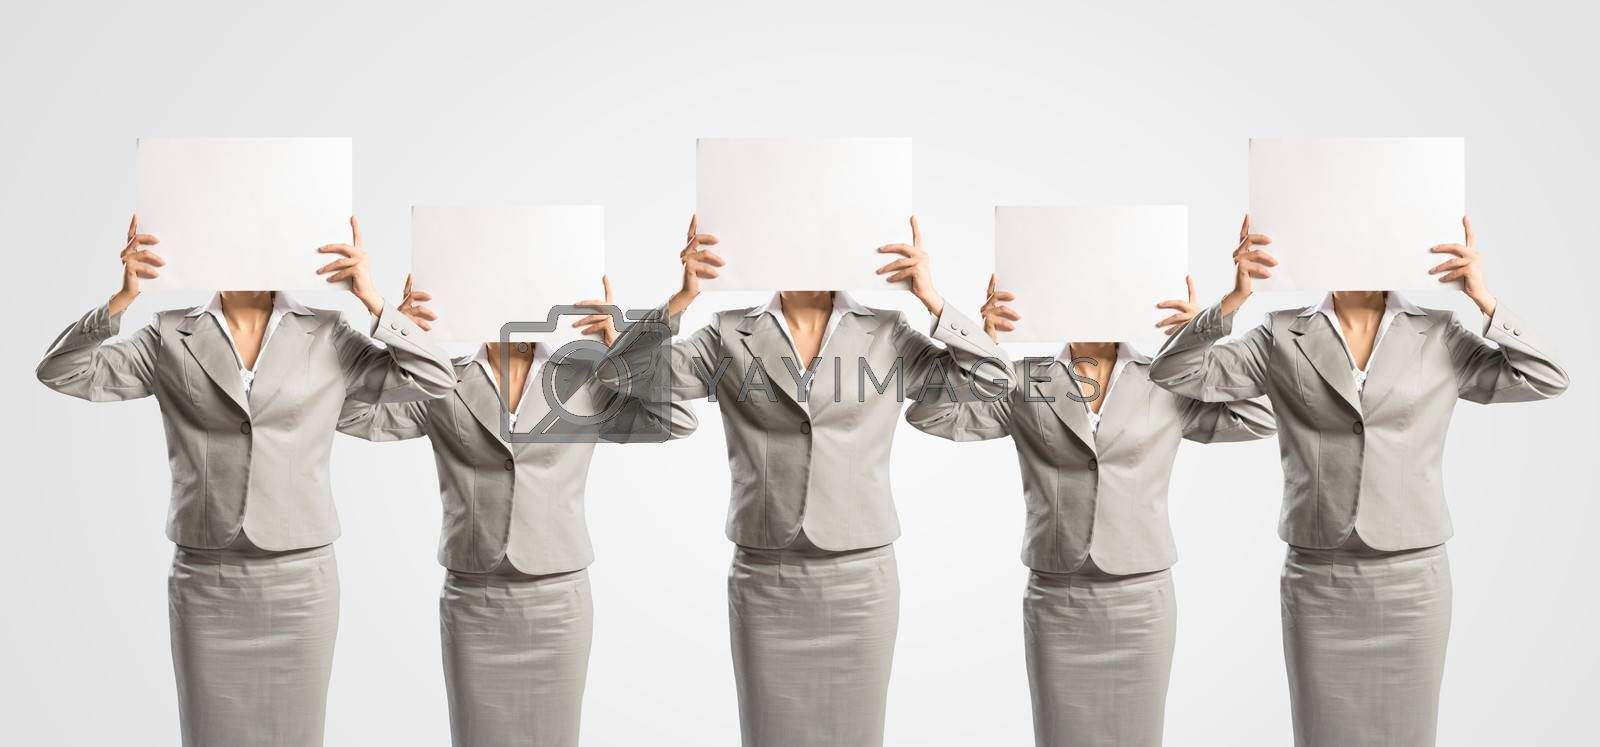 image of a businesswomen standing in a row, held in front of a blank poster